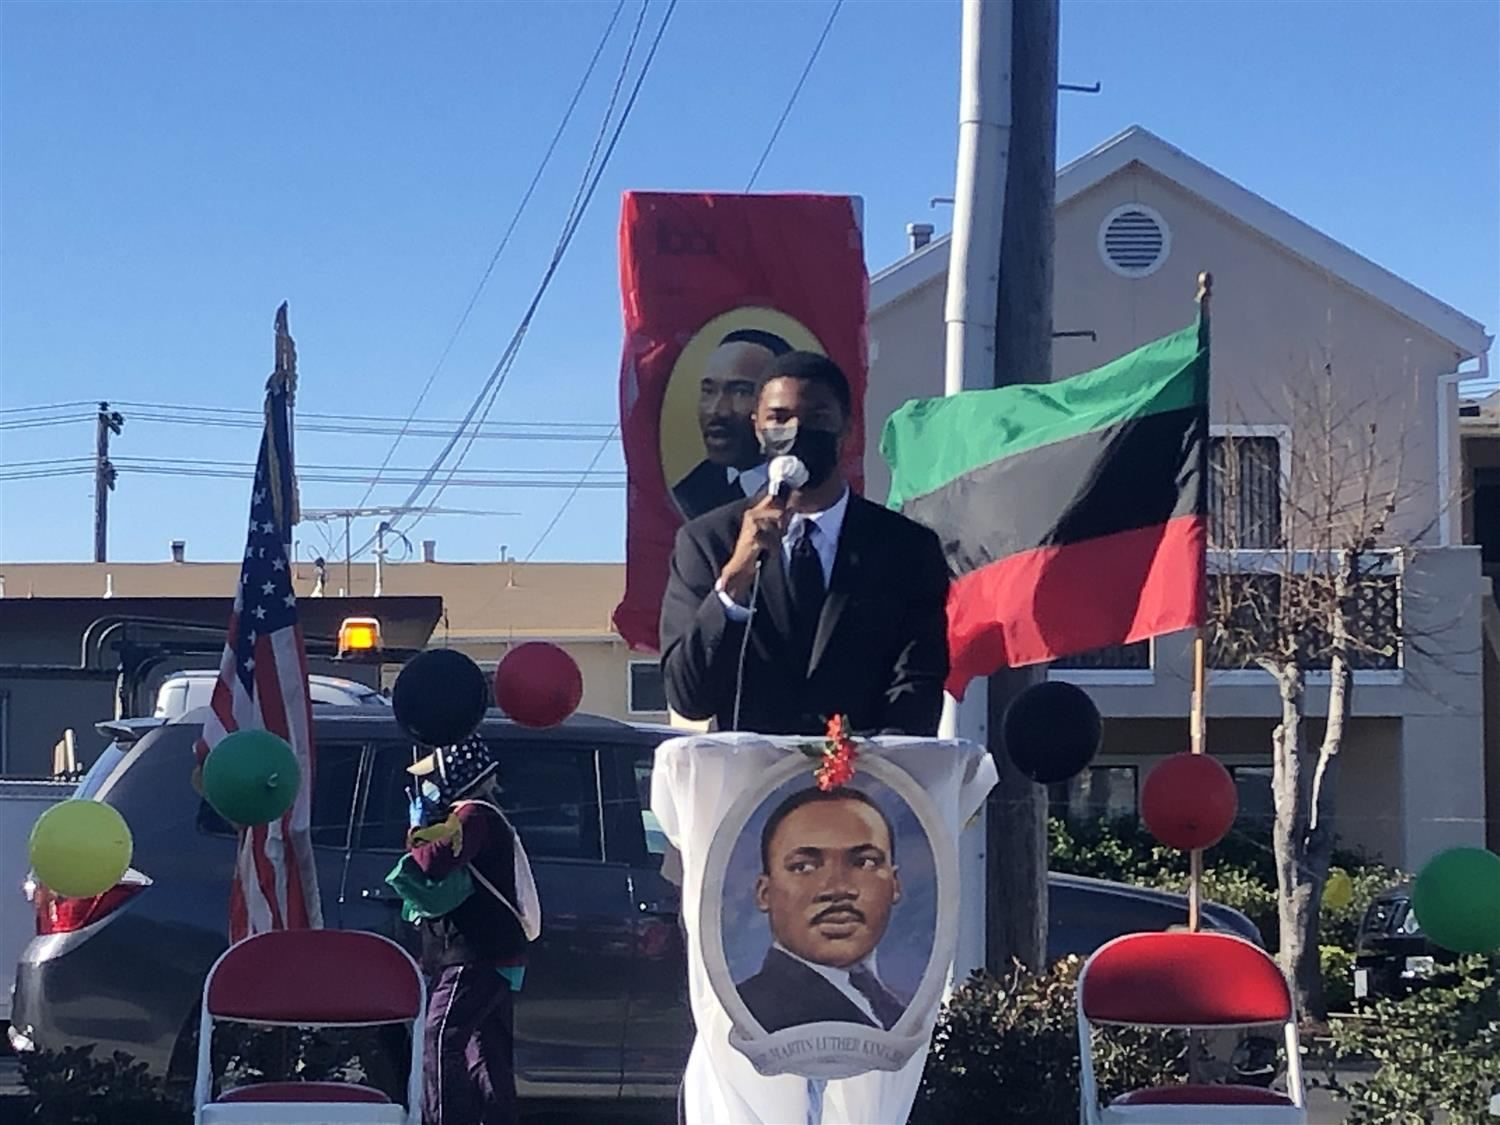 WCCUSD student Caden speaking at the 32nd El Cerrito MLK Celebration